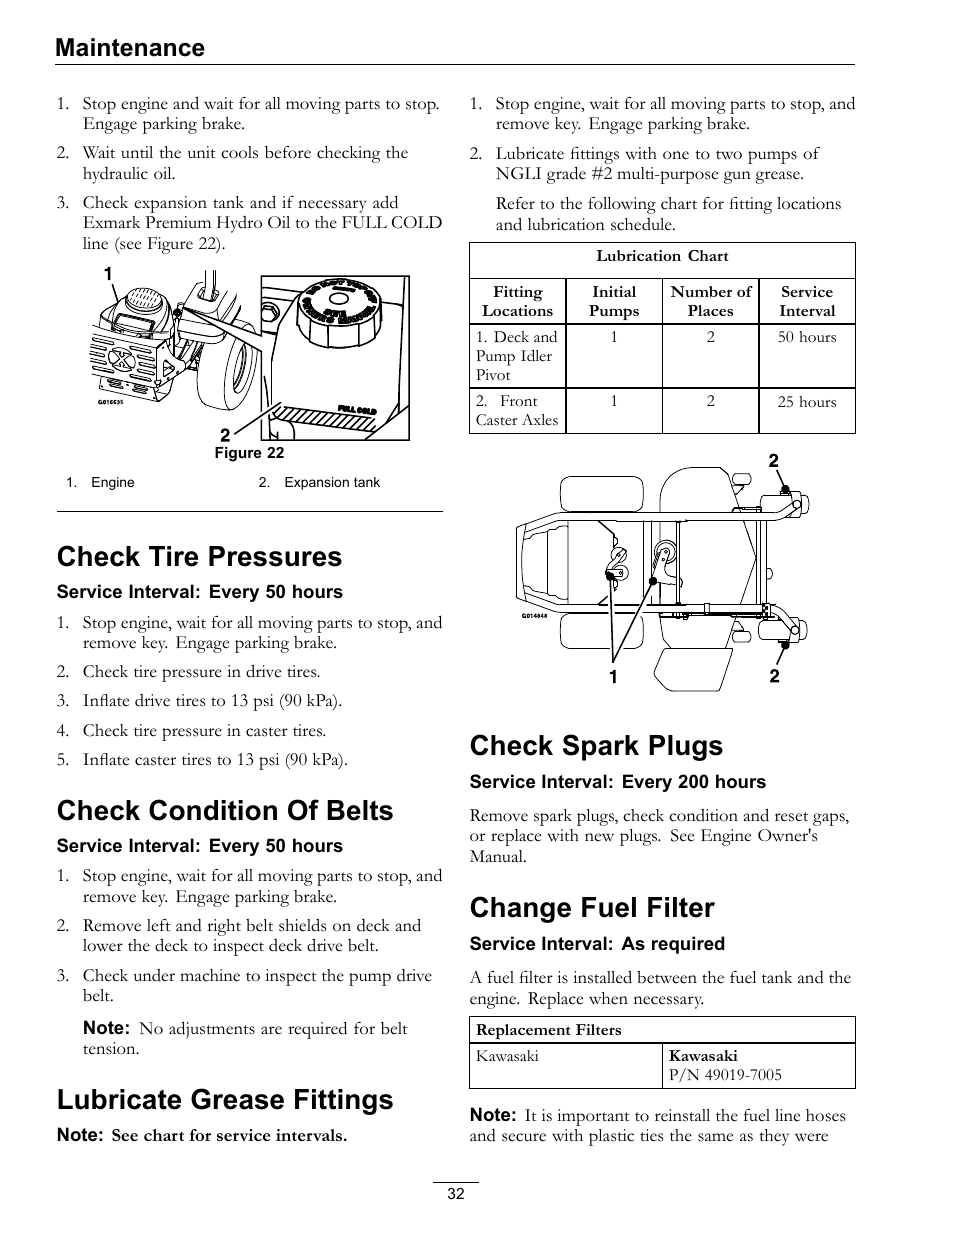 check tire pressures  check condition of belts  lubricate grease fittings exmark mower pioneer exmark lazer z maintenance manual Maintenance Person